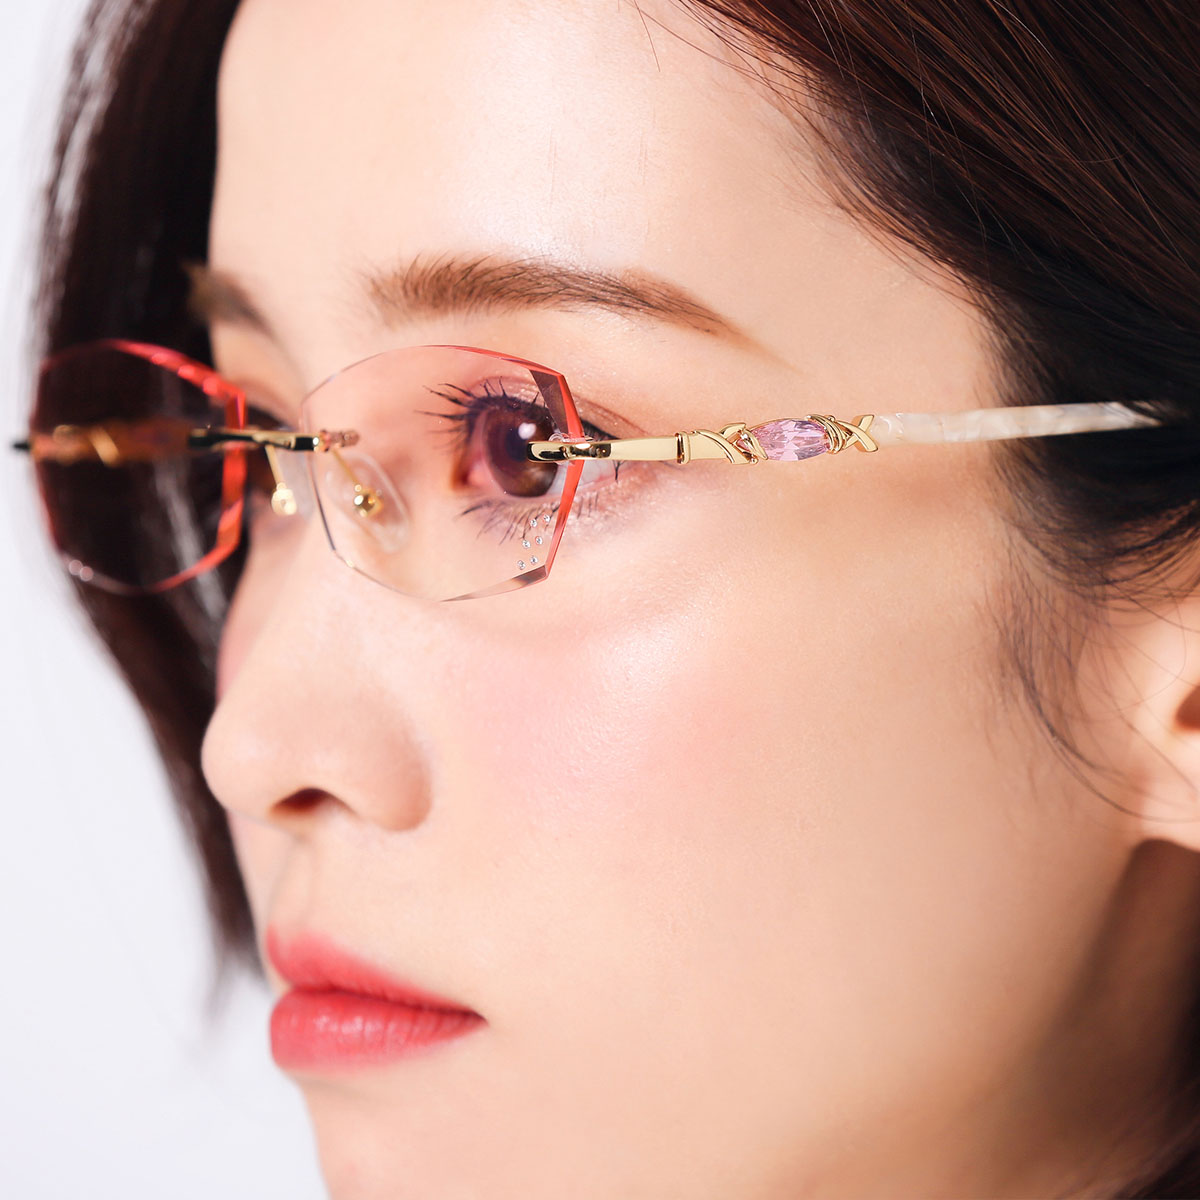 de298df5b00 ... lightbox moreview · lightbox moreview. PrevNext. Trimming glasses  female round face ...